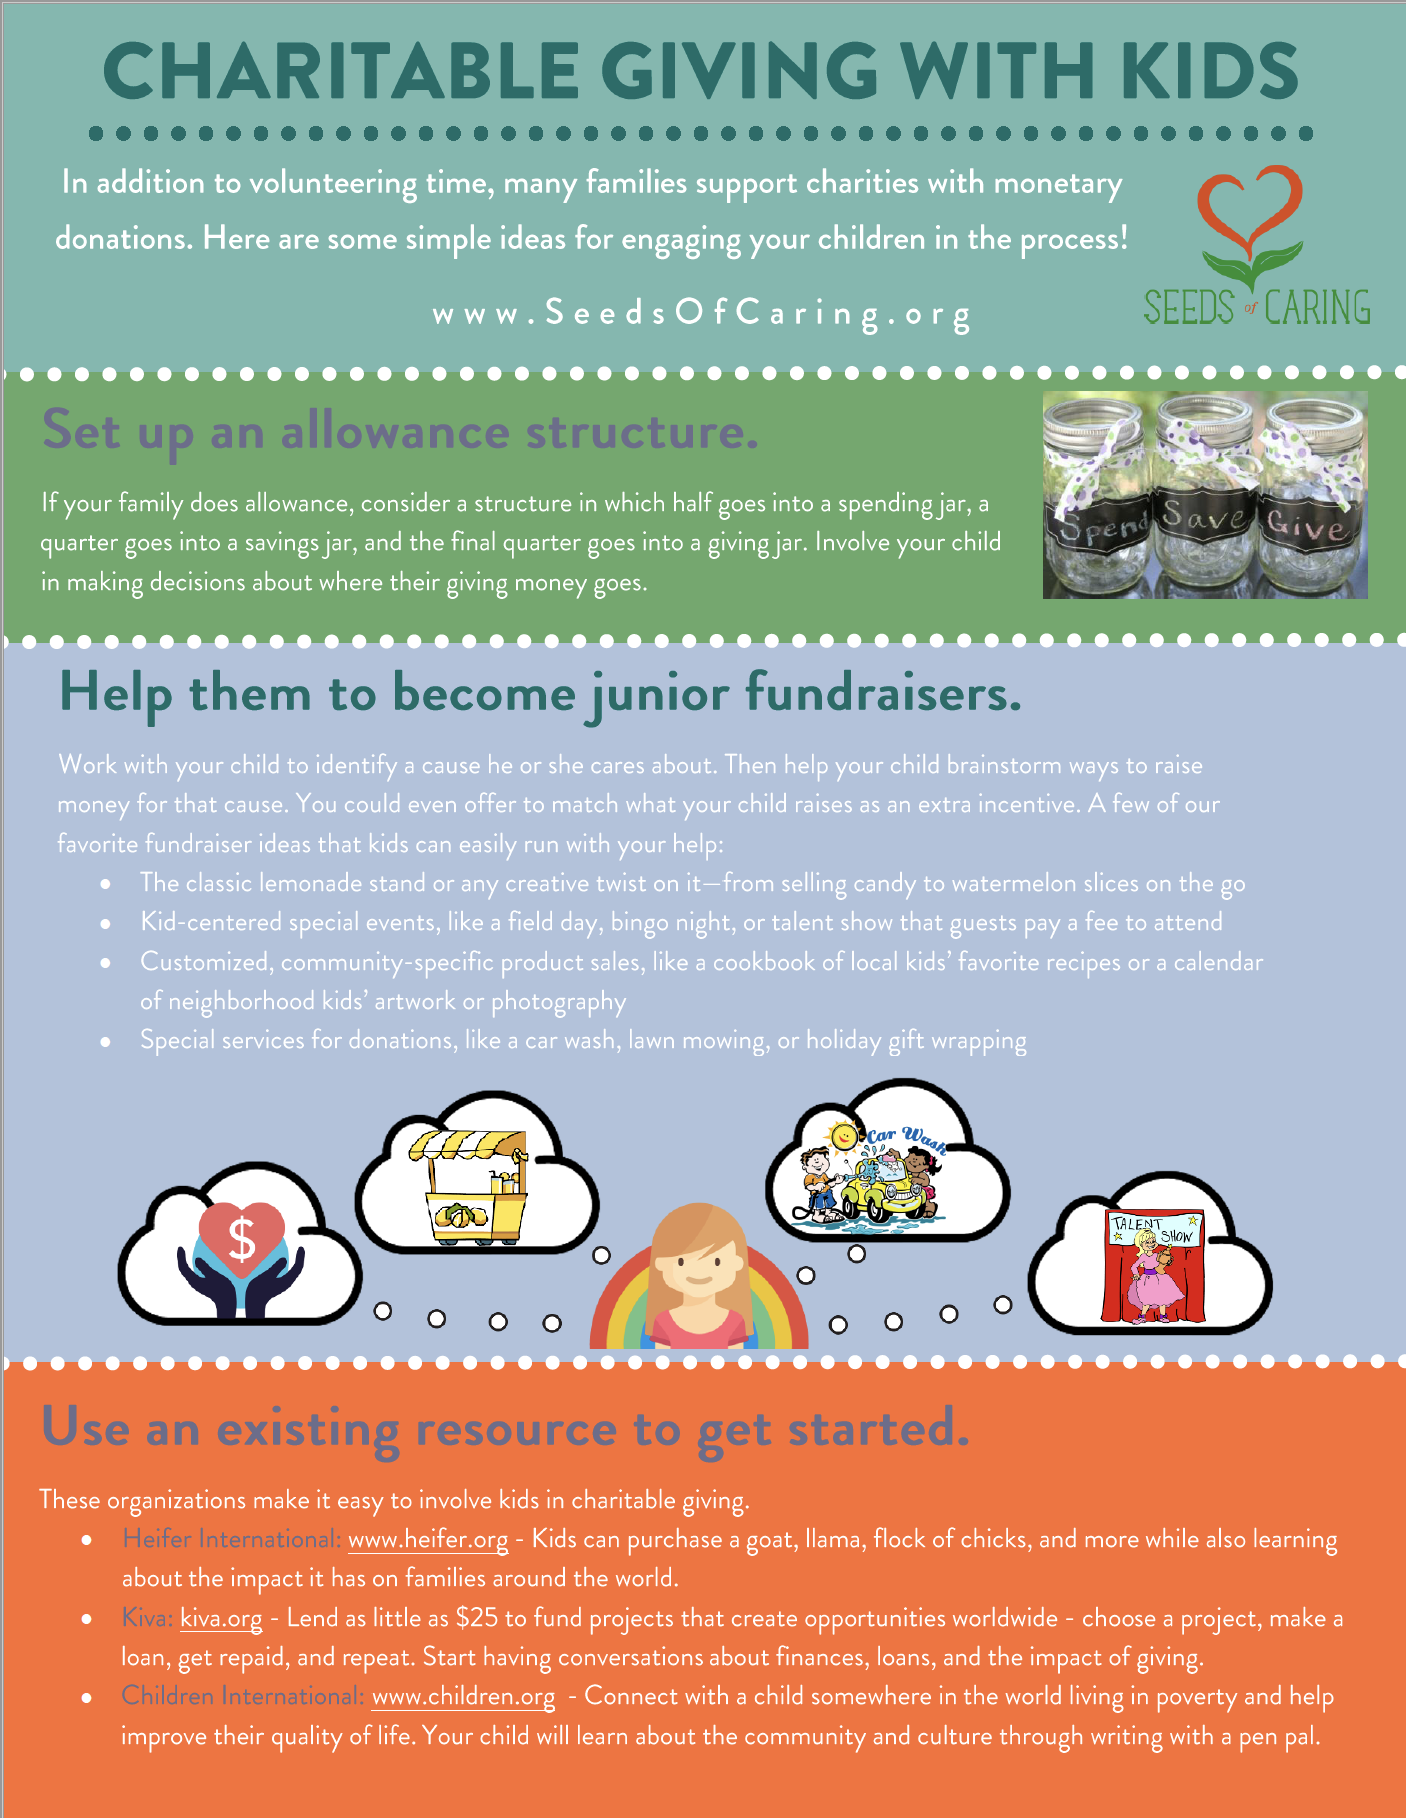 Charitable Giving with Kids